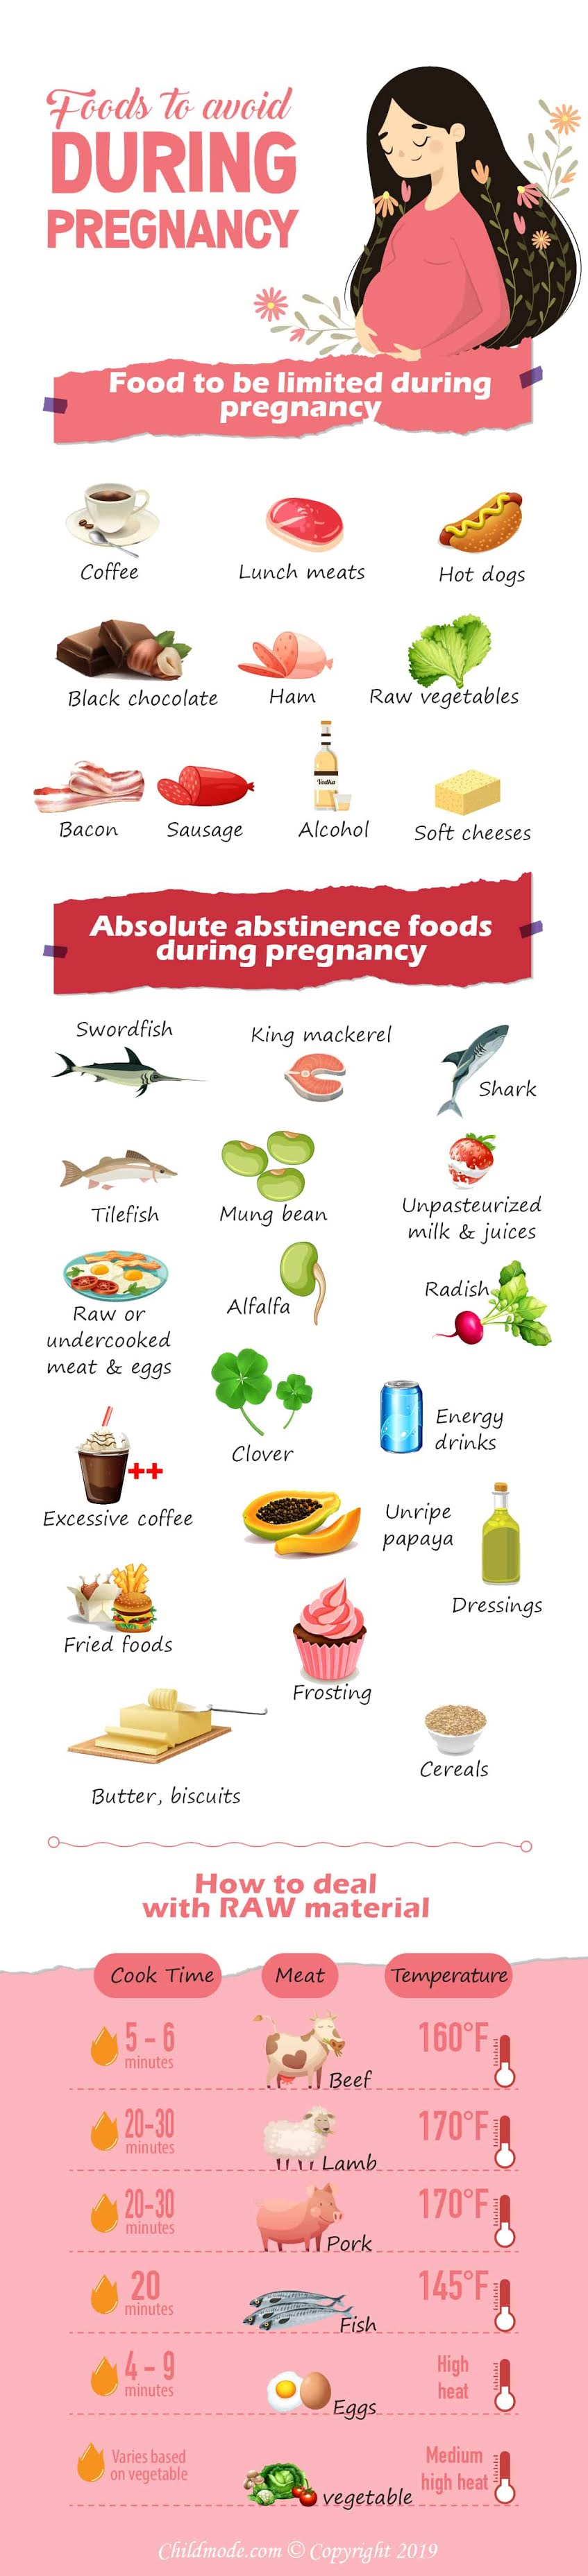 Foods To Avoid During Pregnancy – 2020 #infographic